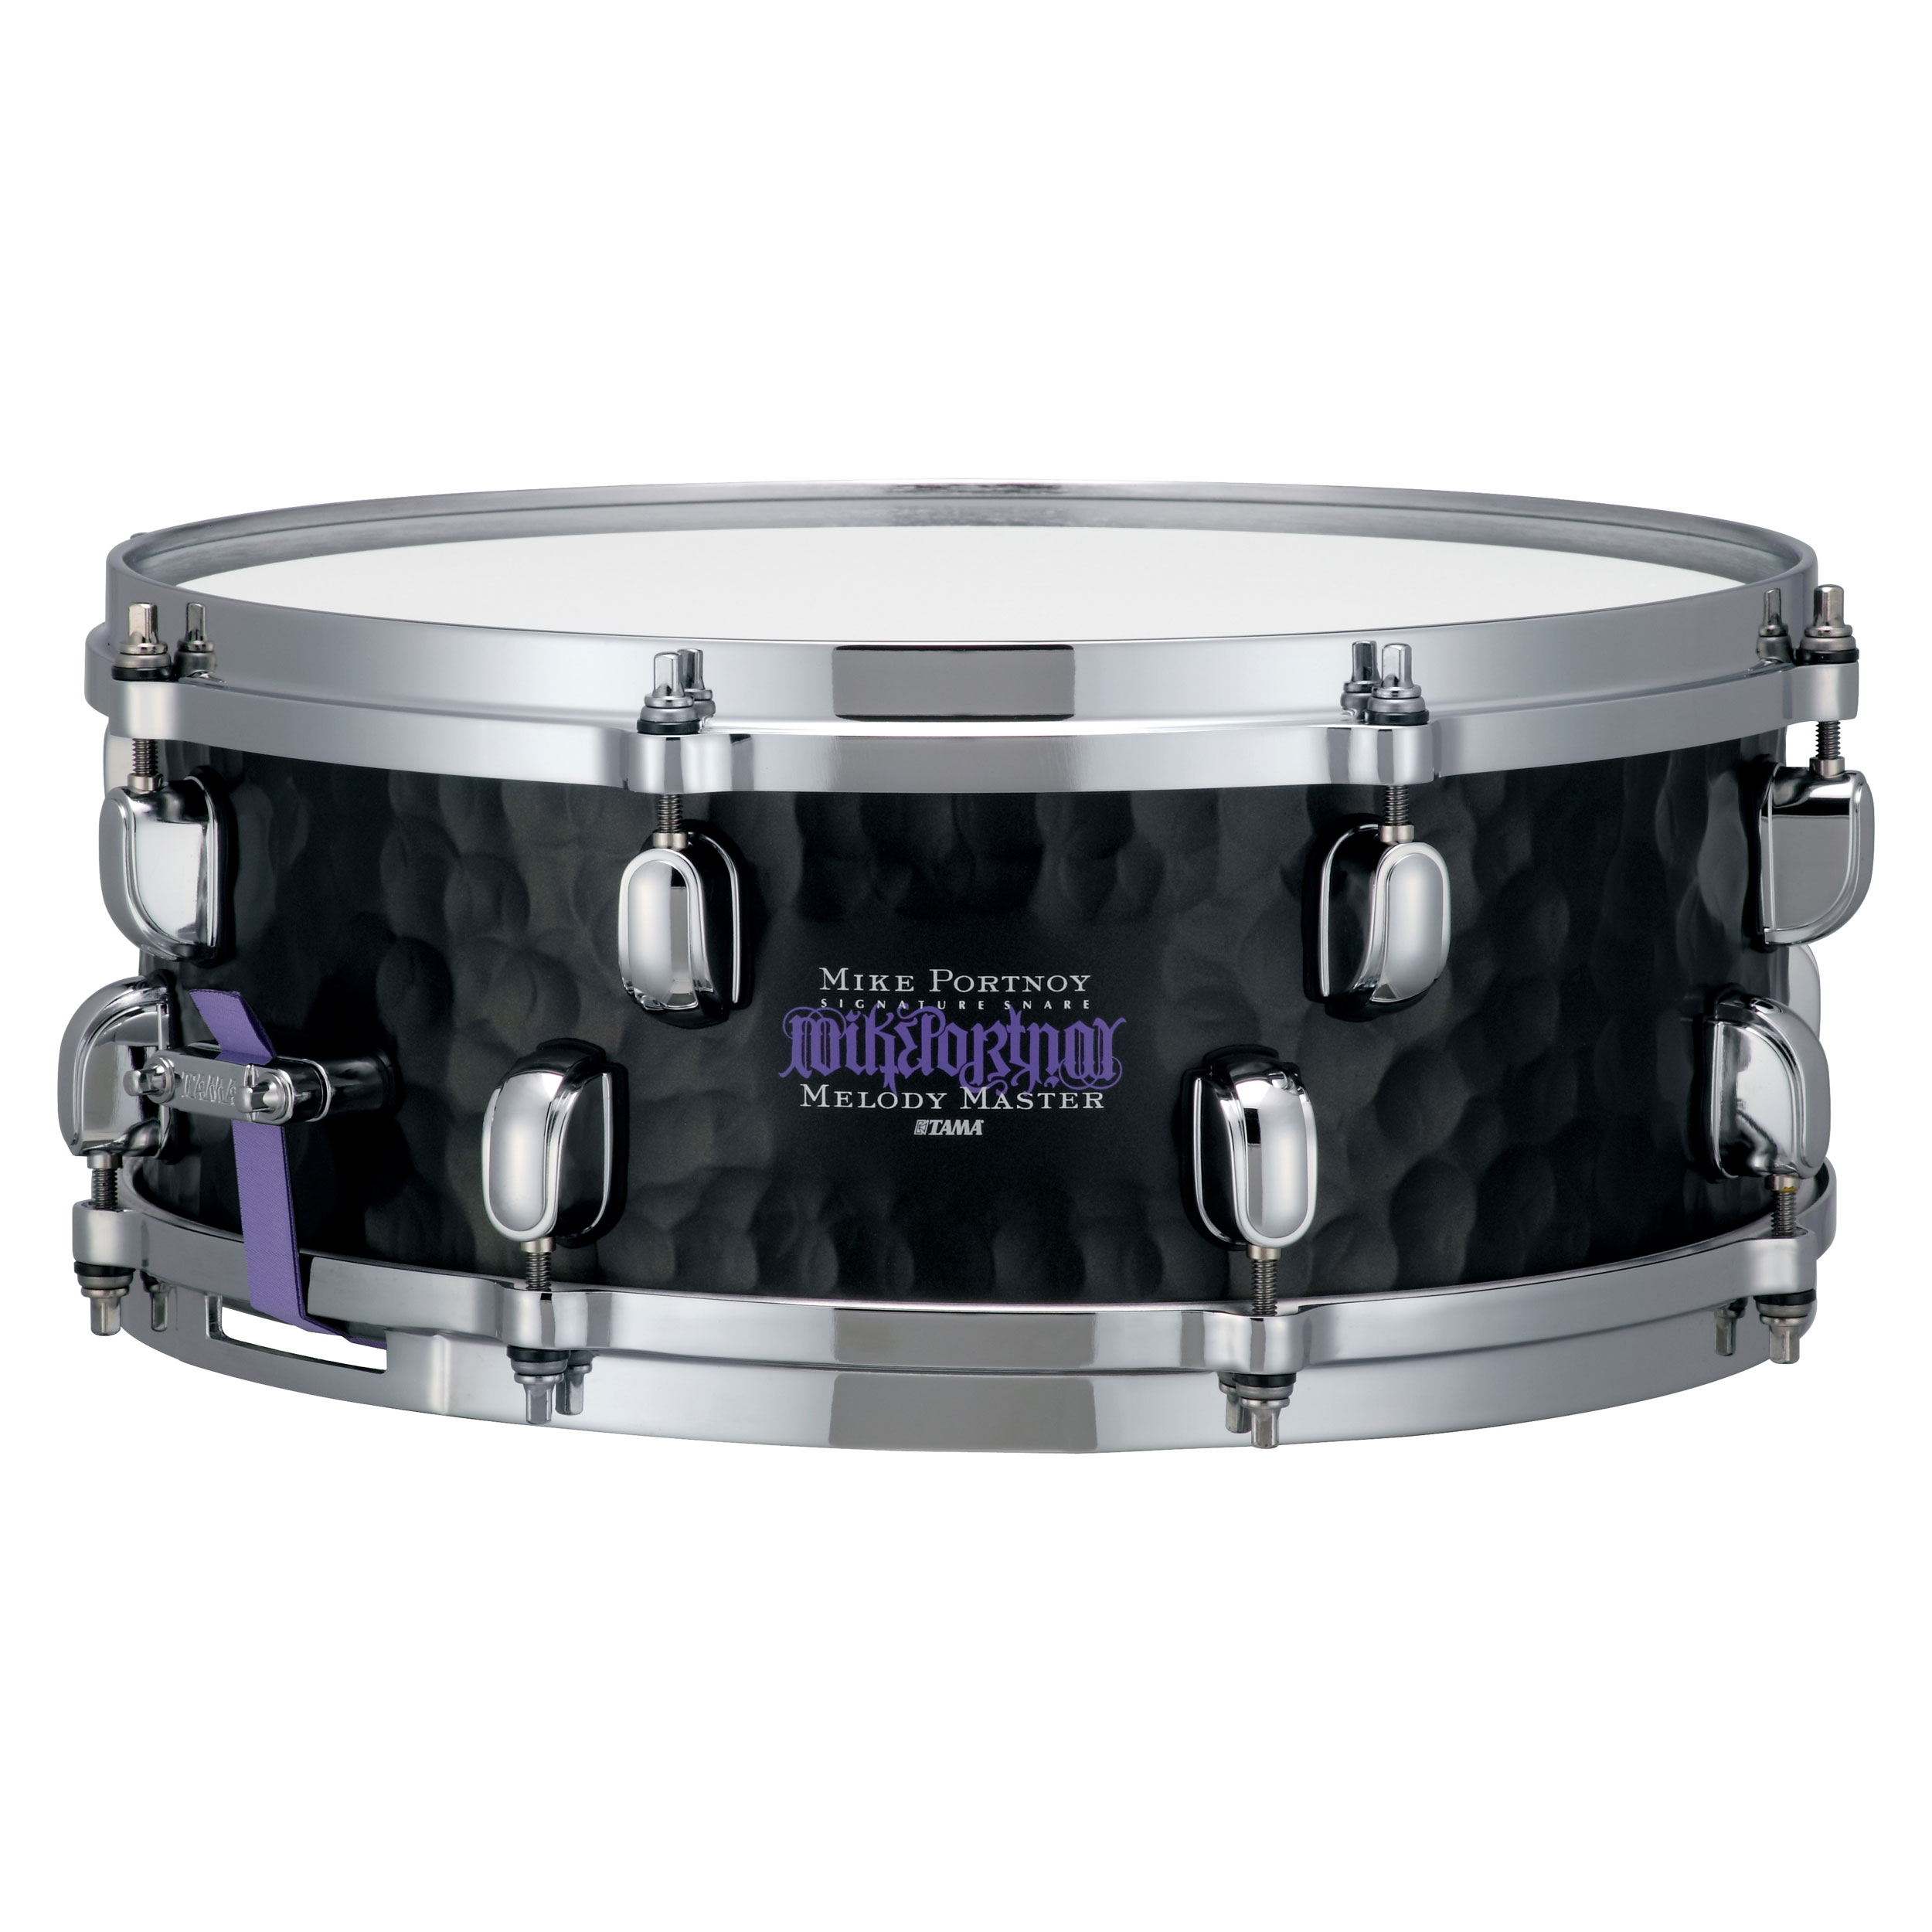 "Tama 5.5"" x 14"" Mike Portnoy Signature Steel Snare Drum"